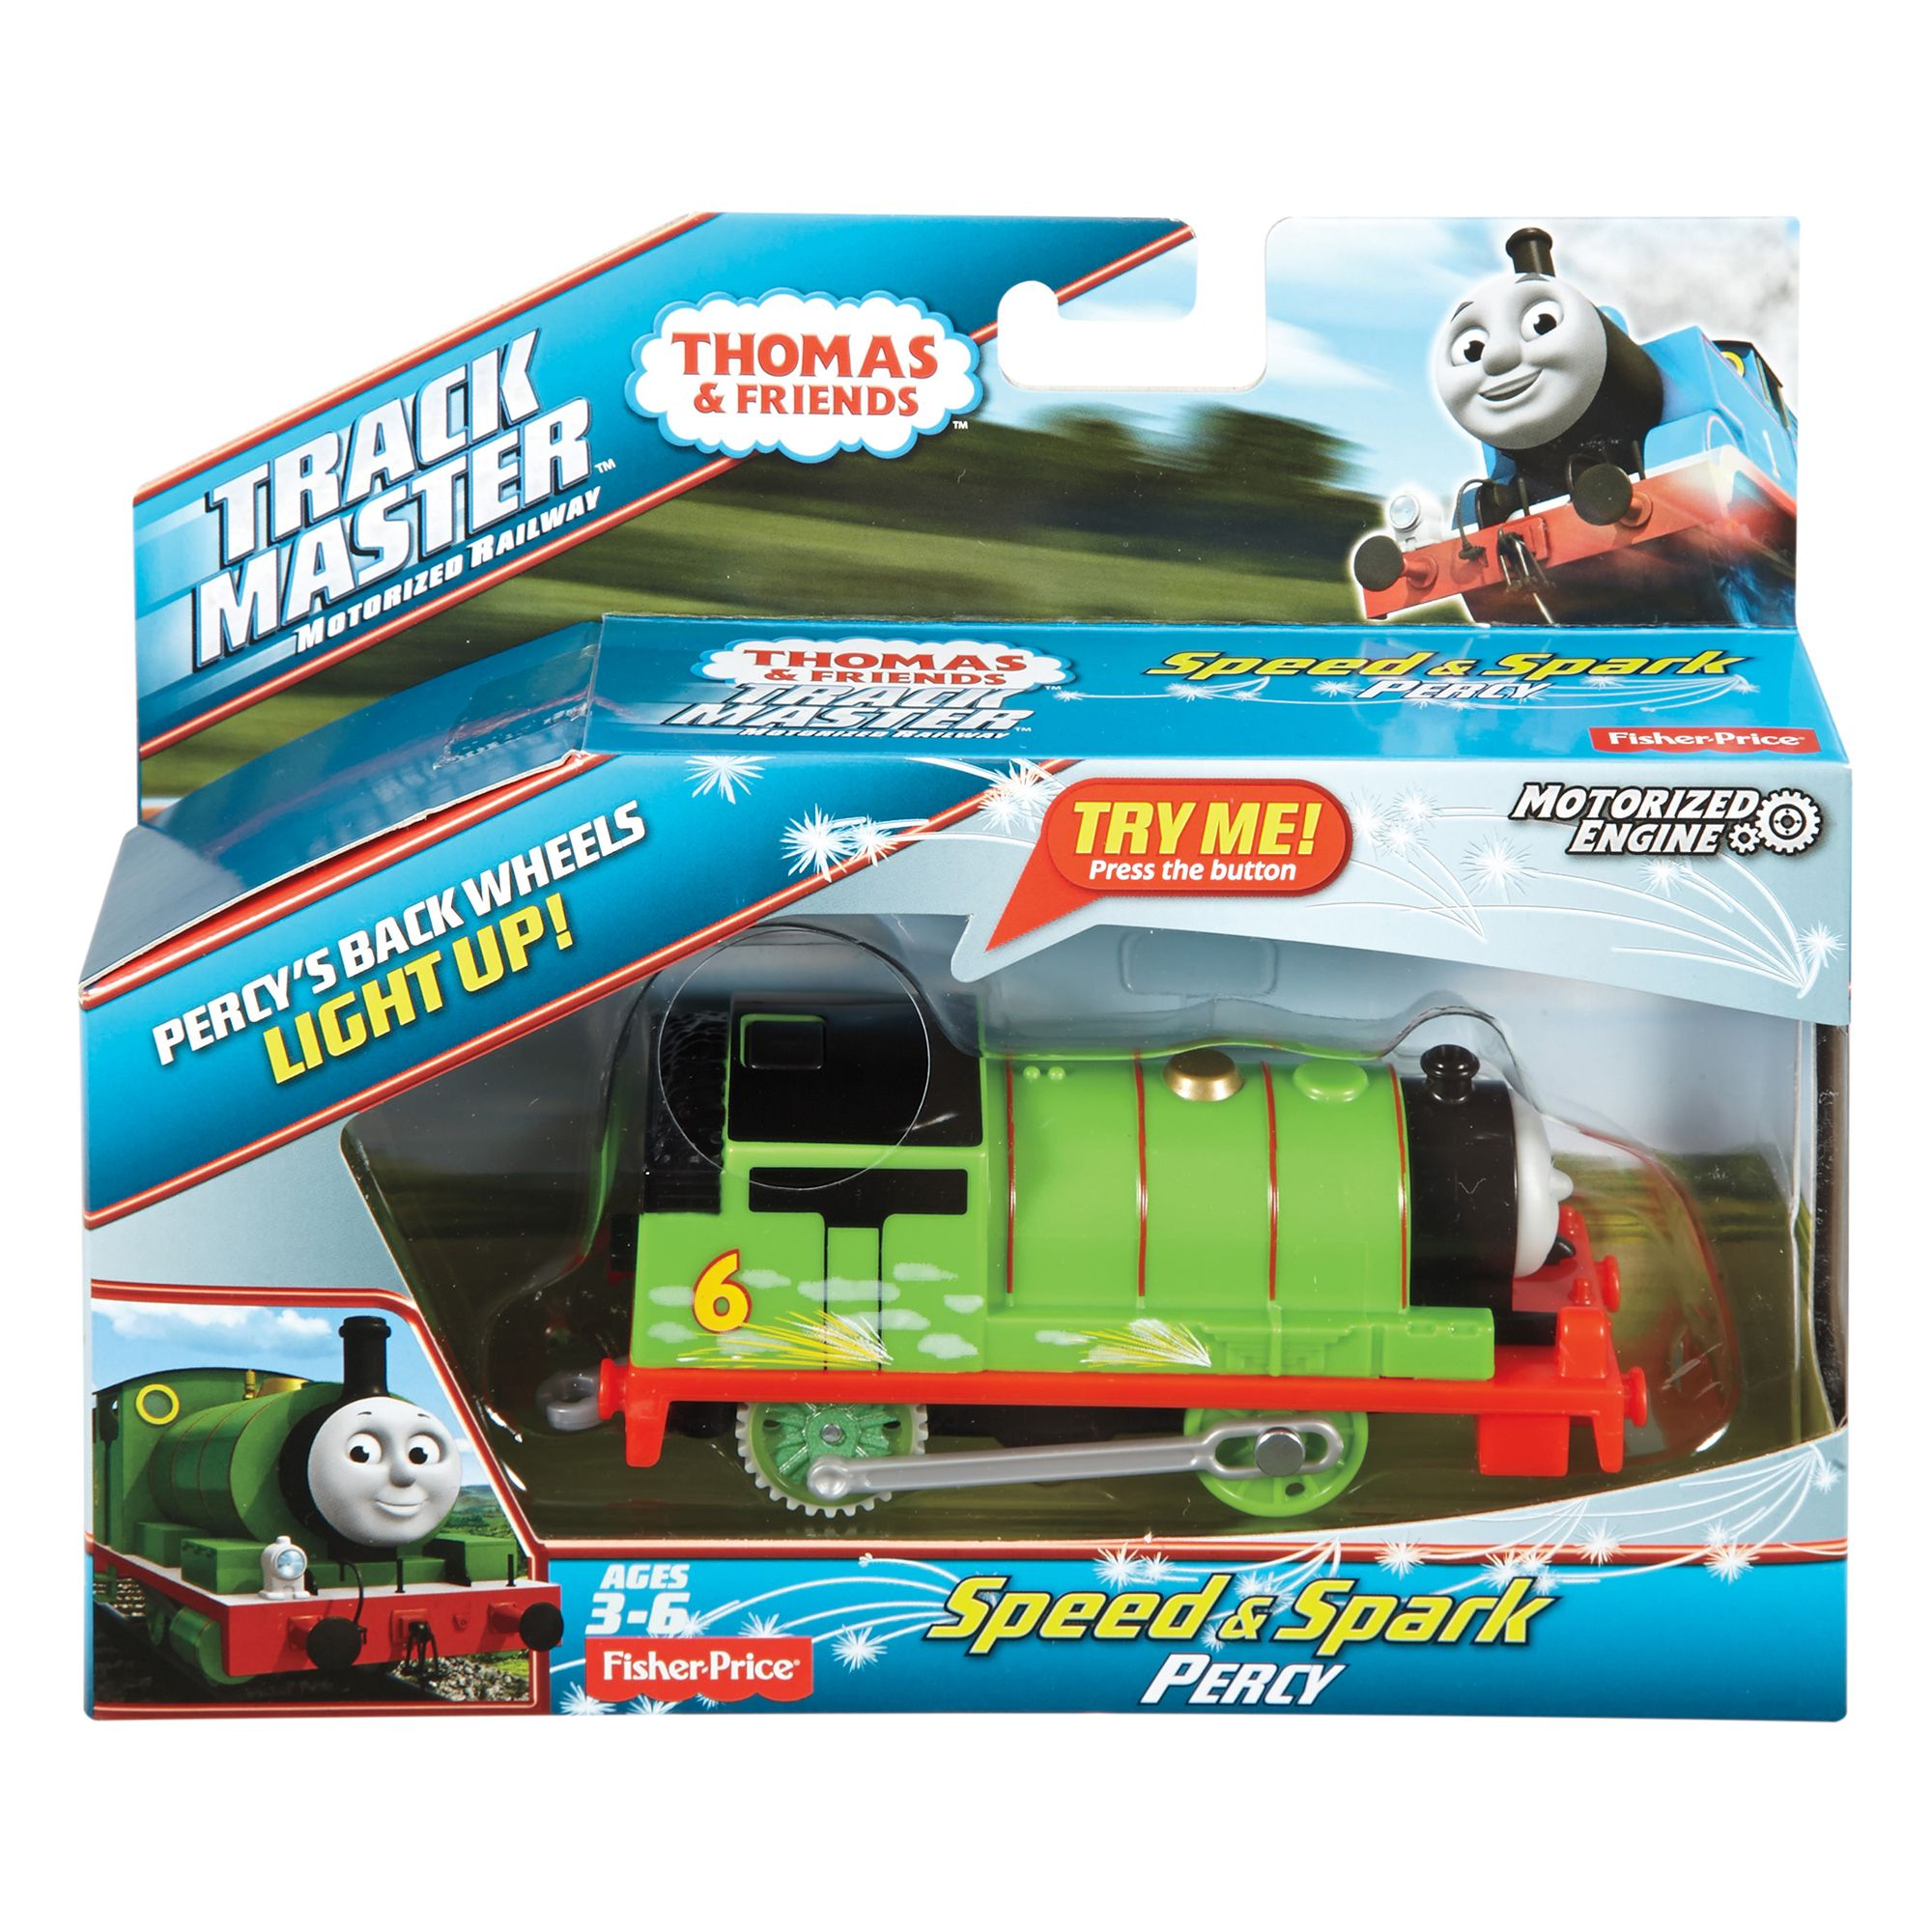 Image of Thomas & Friends Trackmaster Sparky Percy